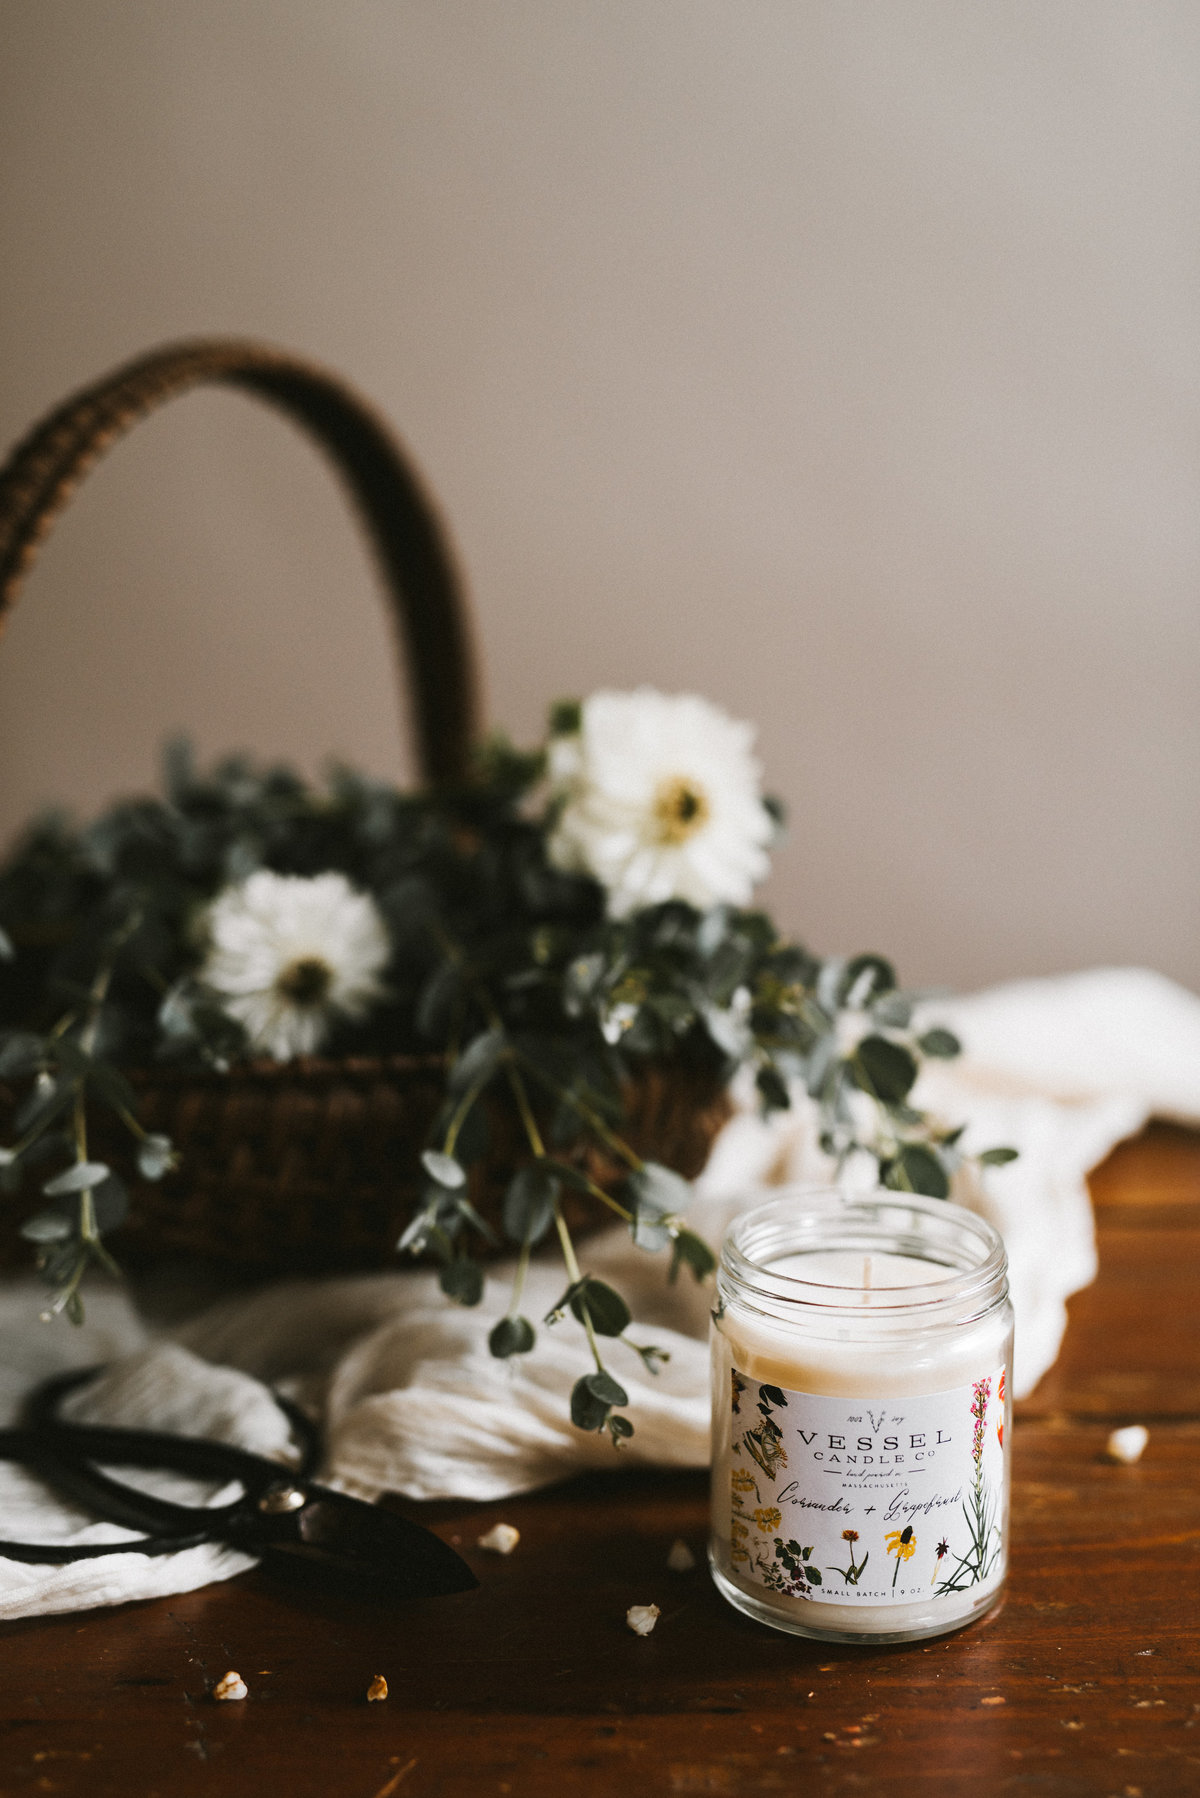 gabby-riggieri-photographer-vessel-candle-co